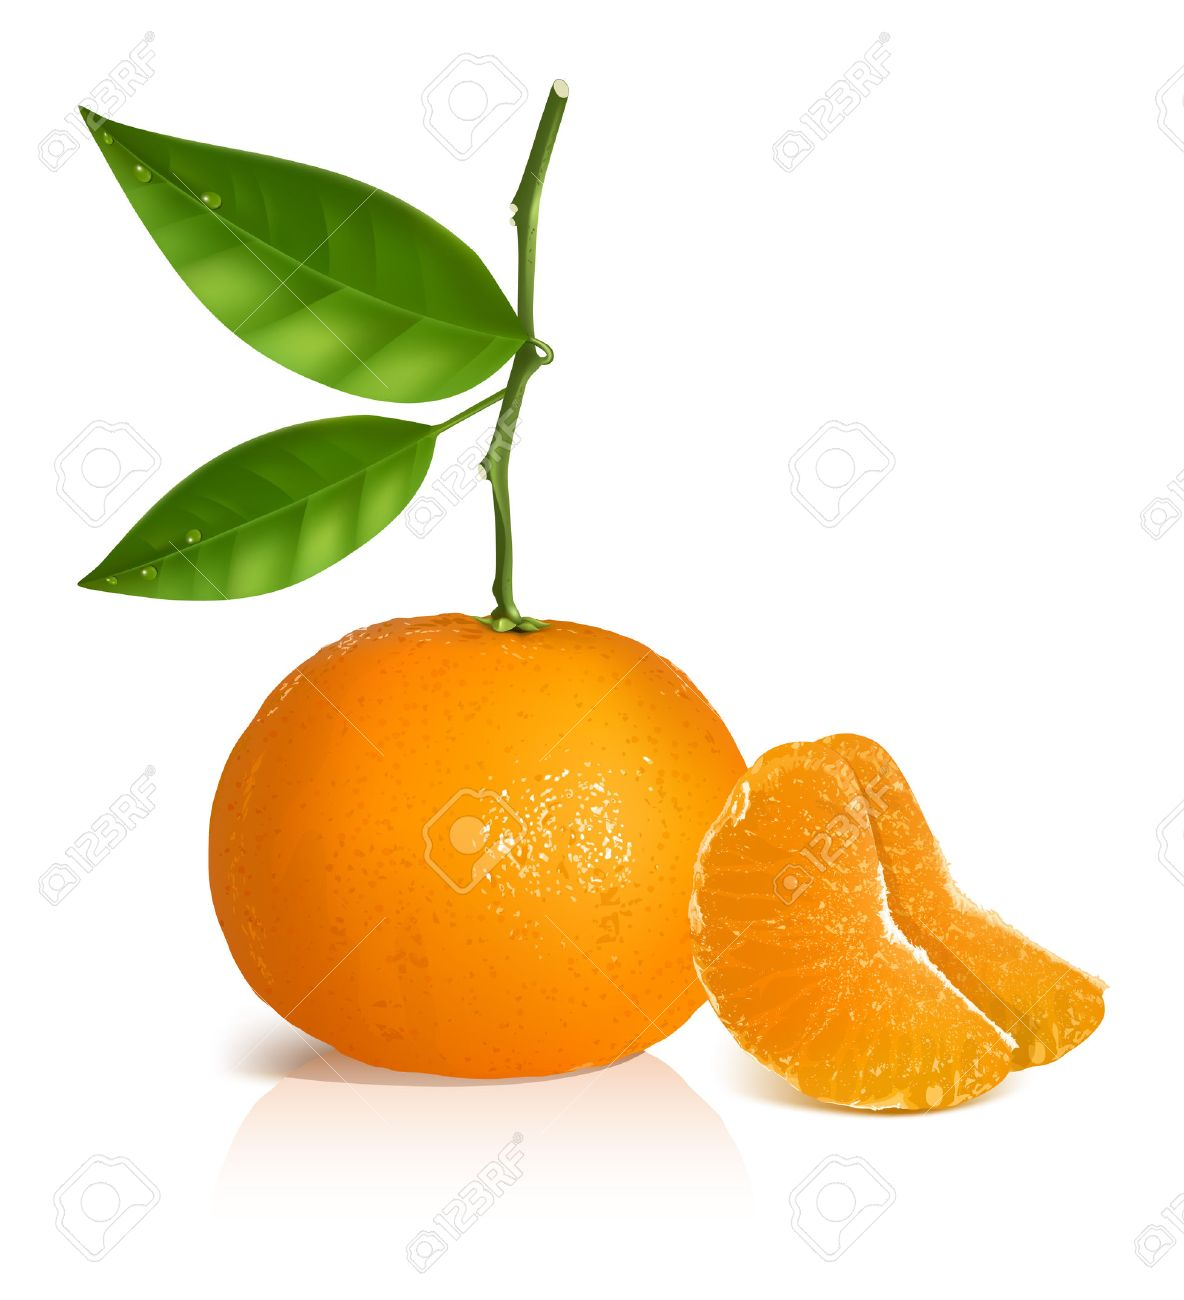 Photo-realistic vector illustration. Fresh tangerine with green leaves and slices. - 26078774